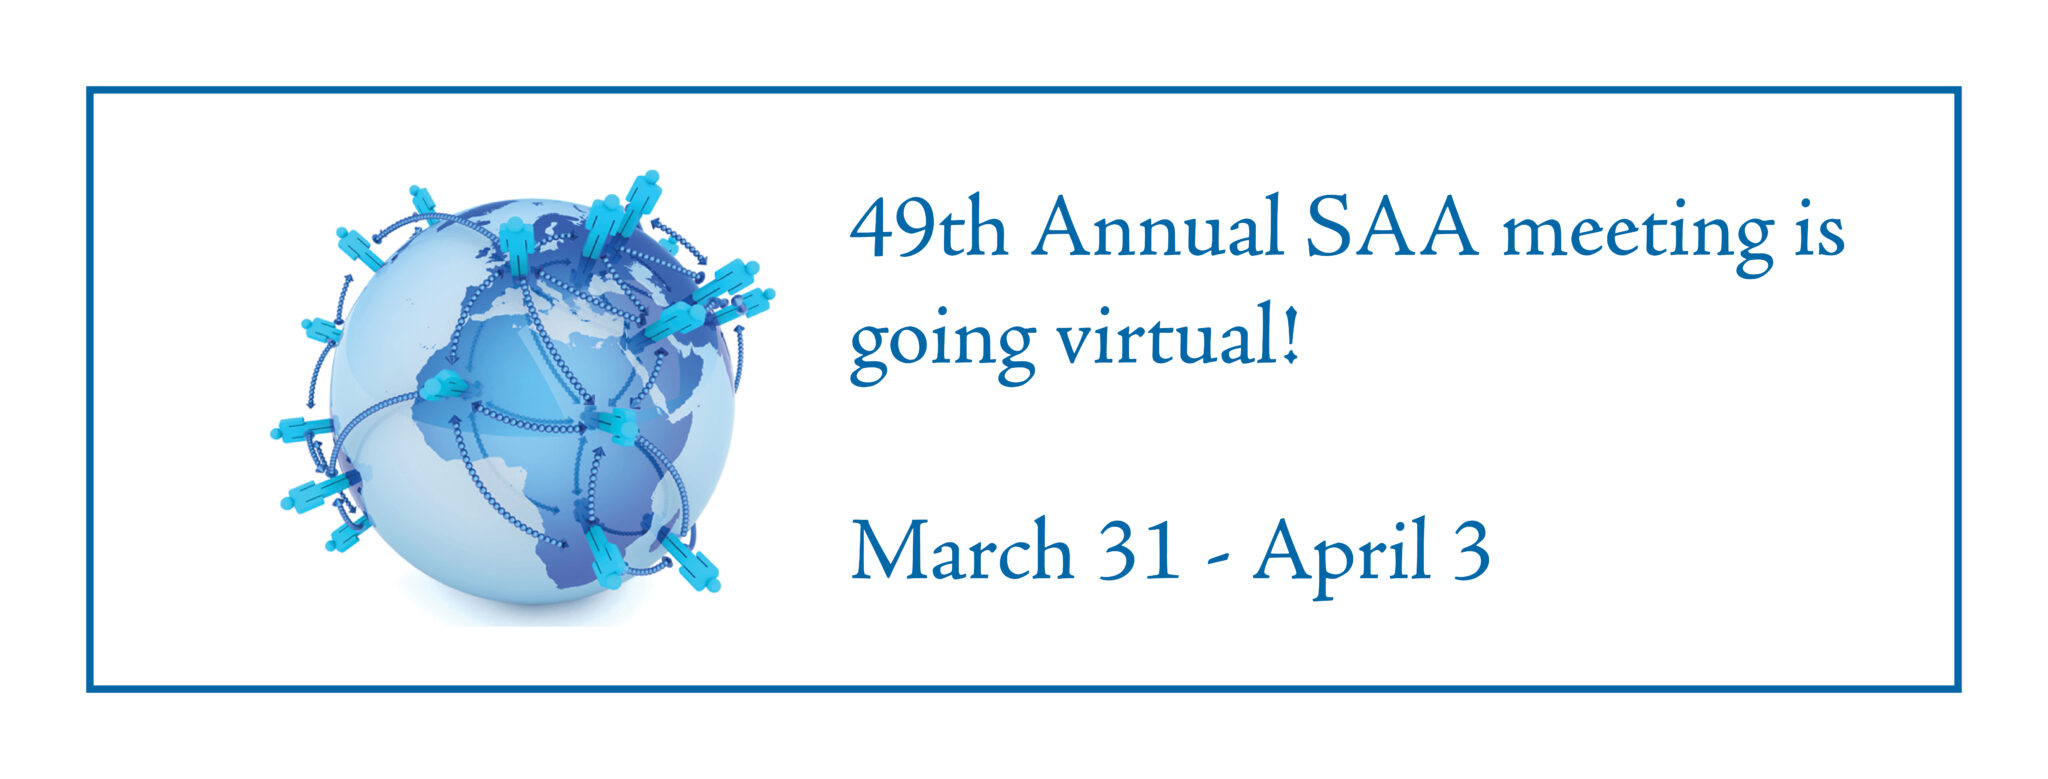 """White logo with a blue border and a blue globe that reads """"49th Annual SAA meeting is going virtual! March 31-April 3"""""""